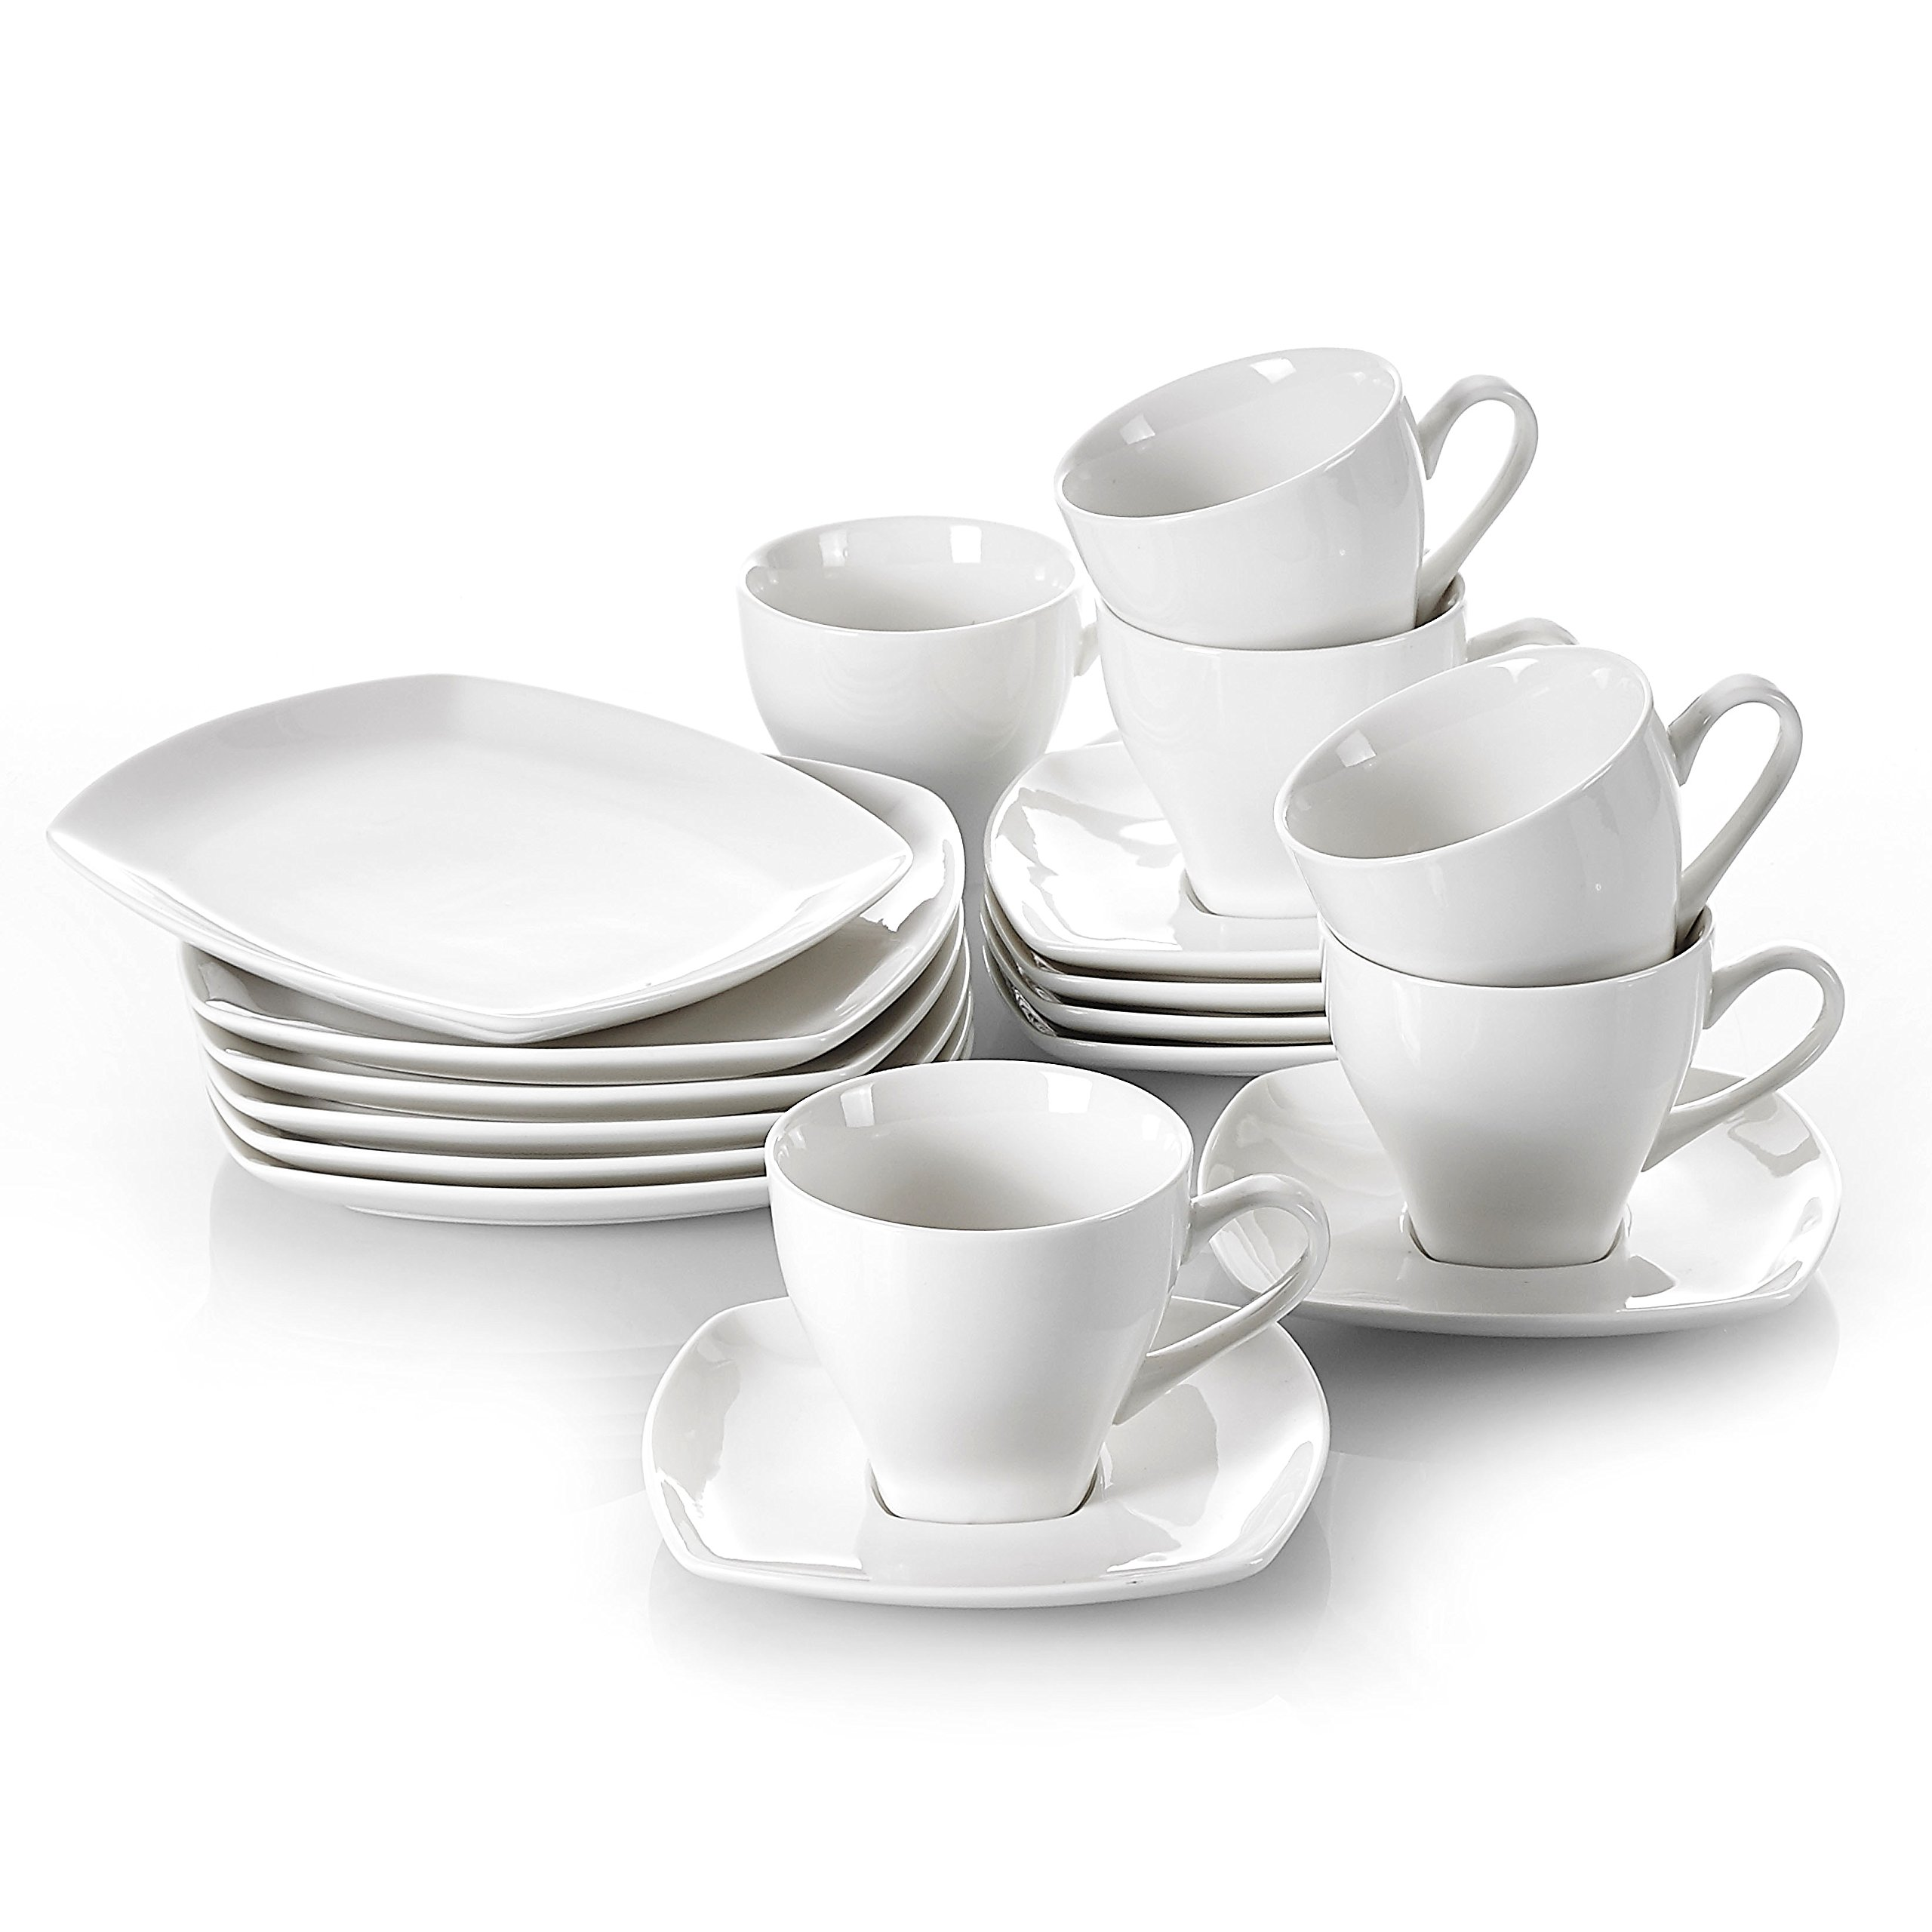 V VANCASSO Ivory Porcelain Snack Plate and Cup Set, Teacup and Saucer Set with Dessert Plates for 6, 18-Piece …